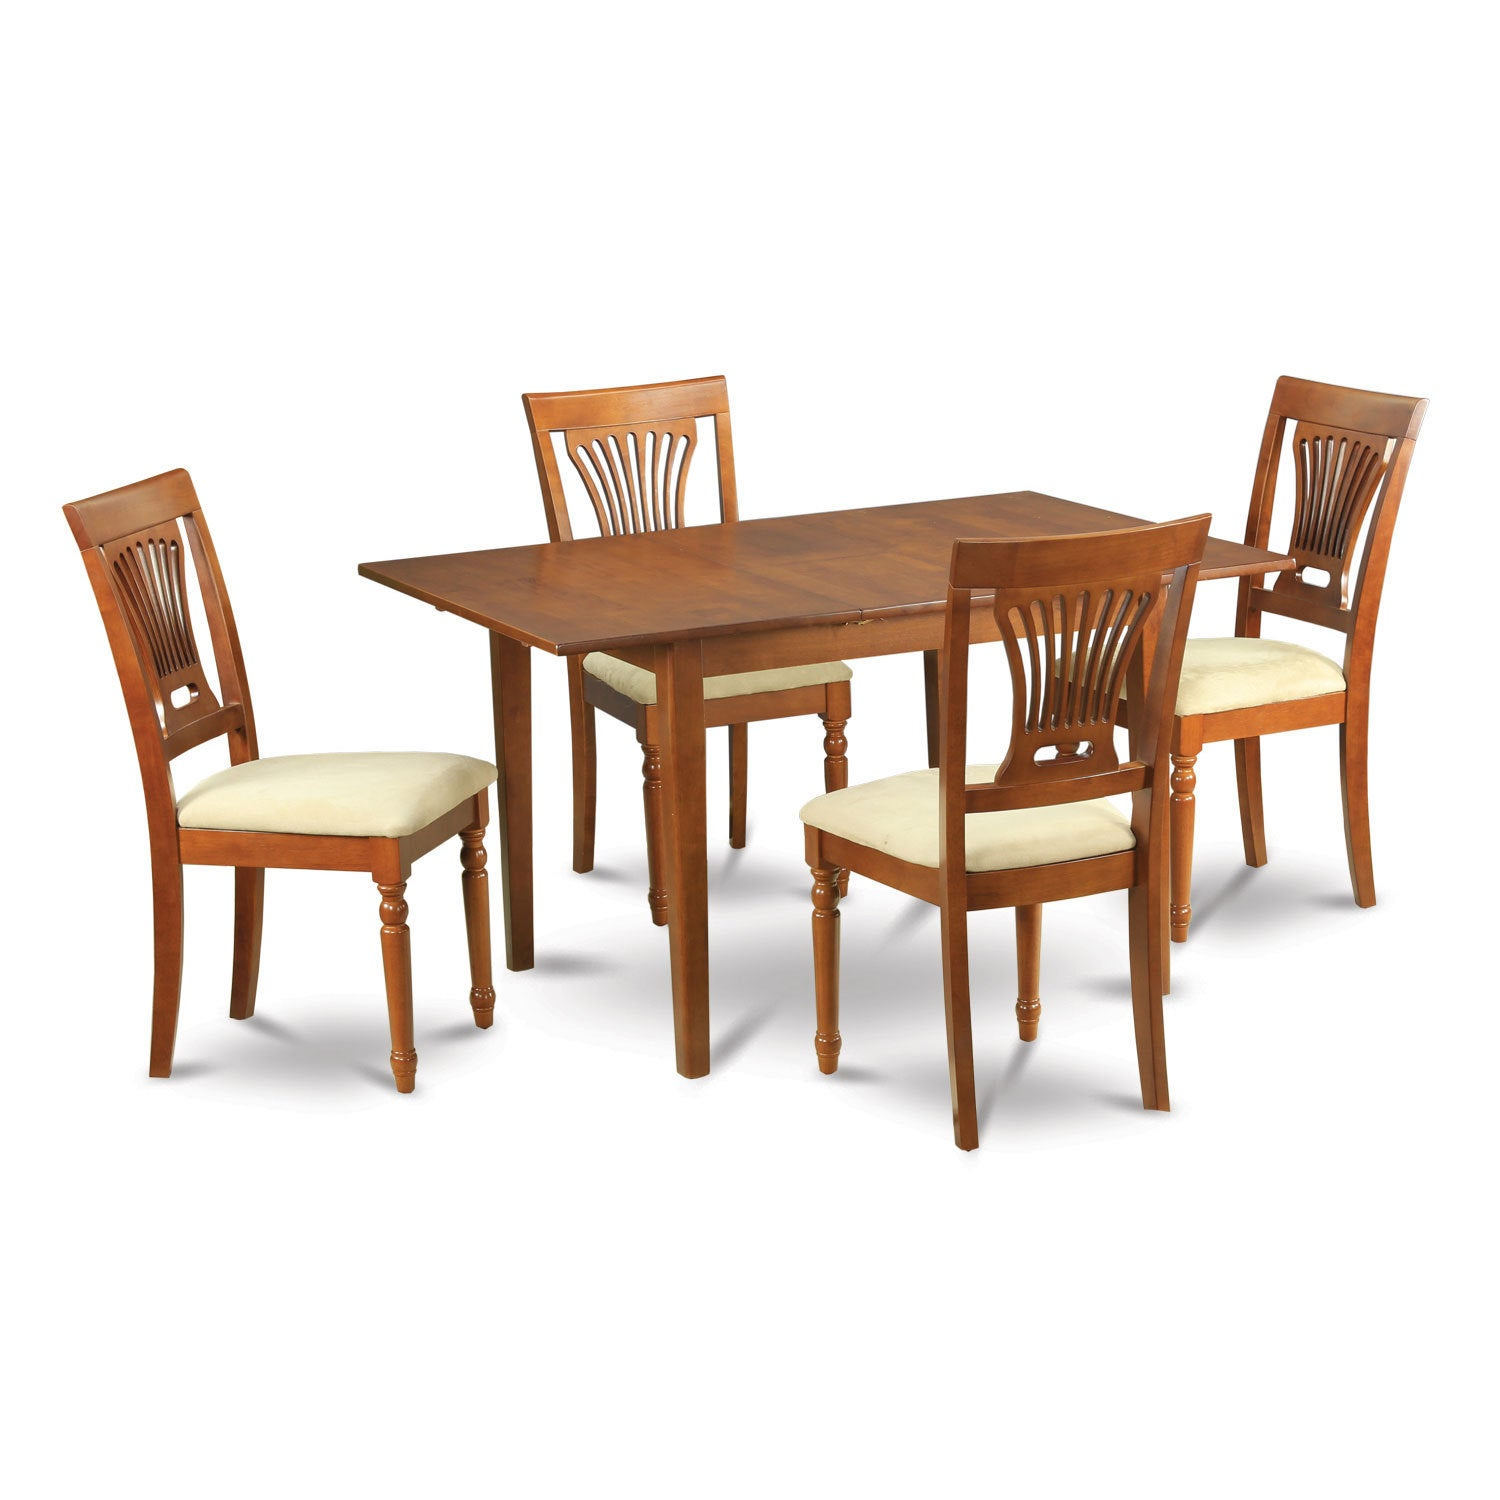 5-piece Small Dining Table and 4 Kitchen Chairs - Free Shipping ...